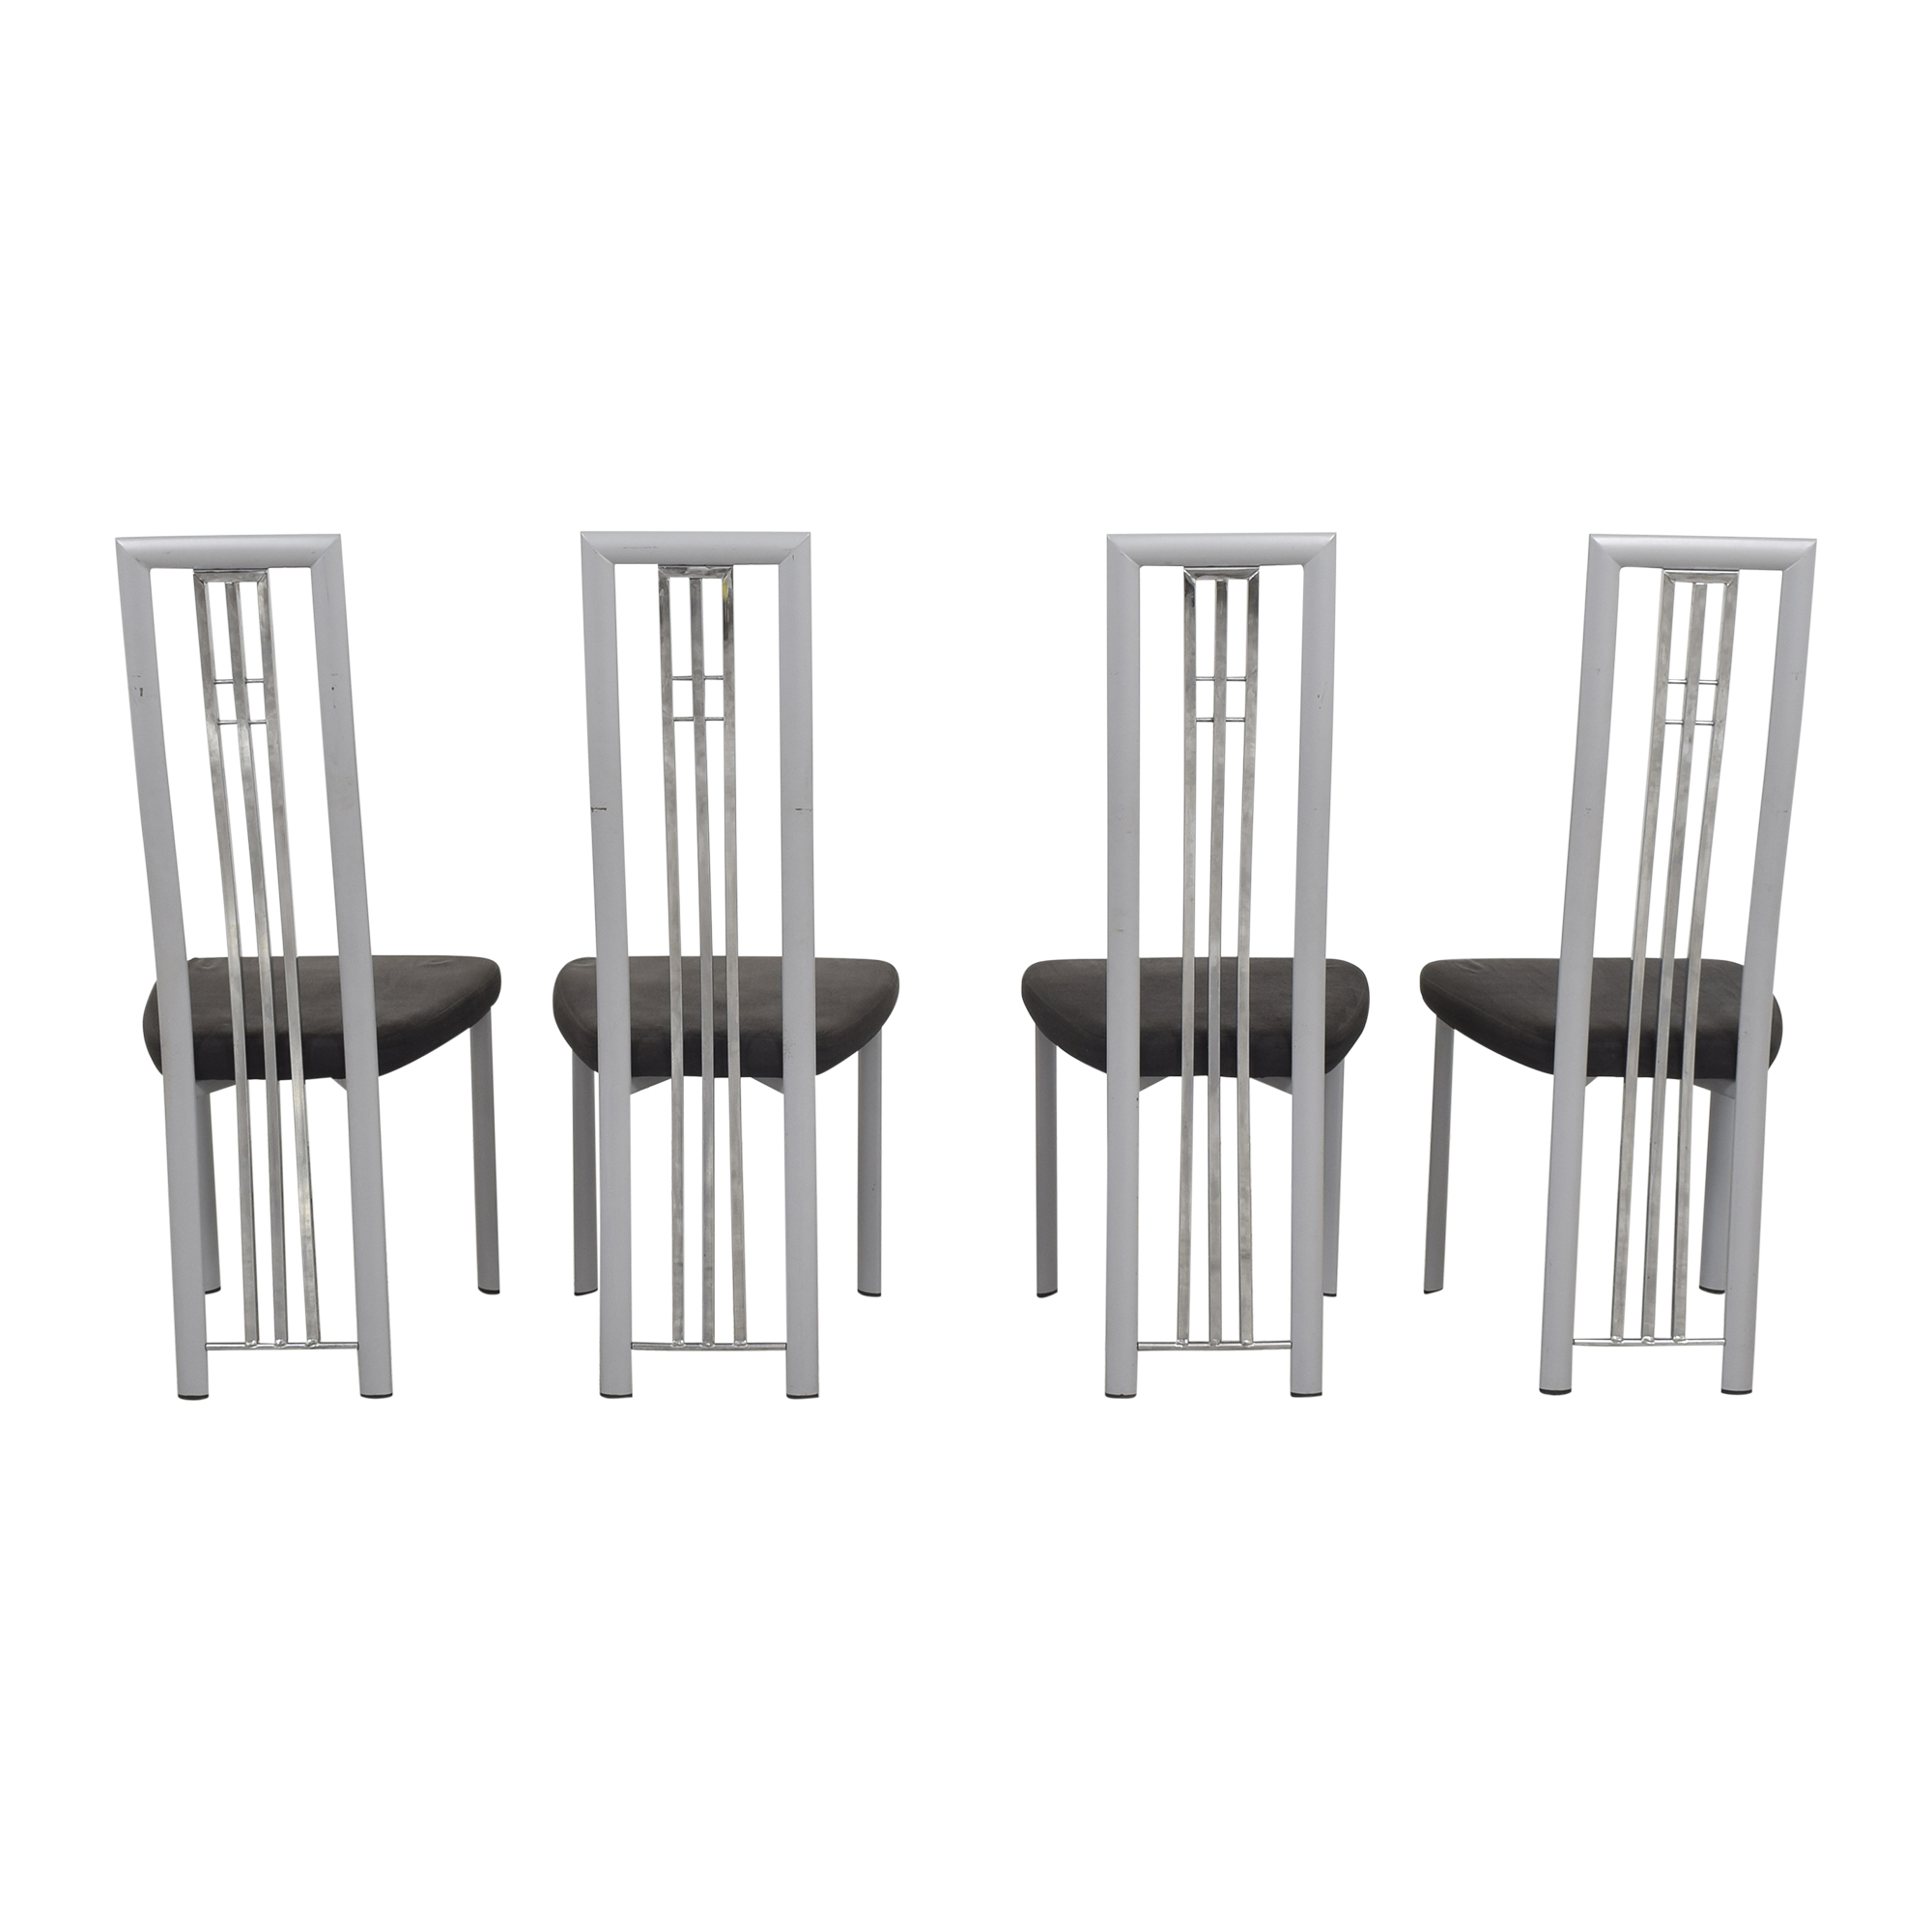 Effezeta Effezeta High Back Dining Chairs Chairs